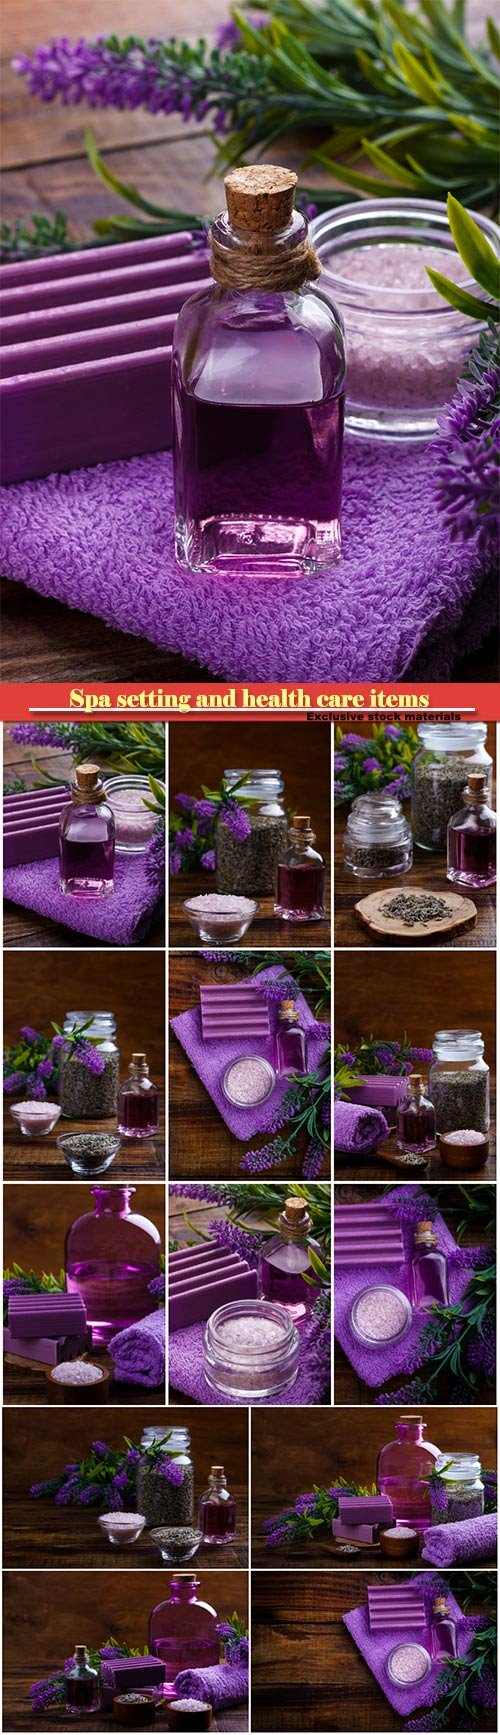 Spa setting and health care items, lavender handmade soap, body oil, bath salt, towel, on wooden board